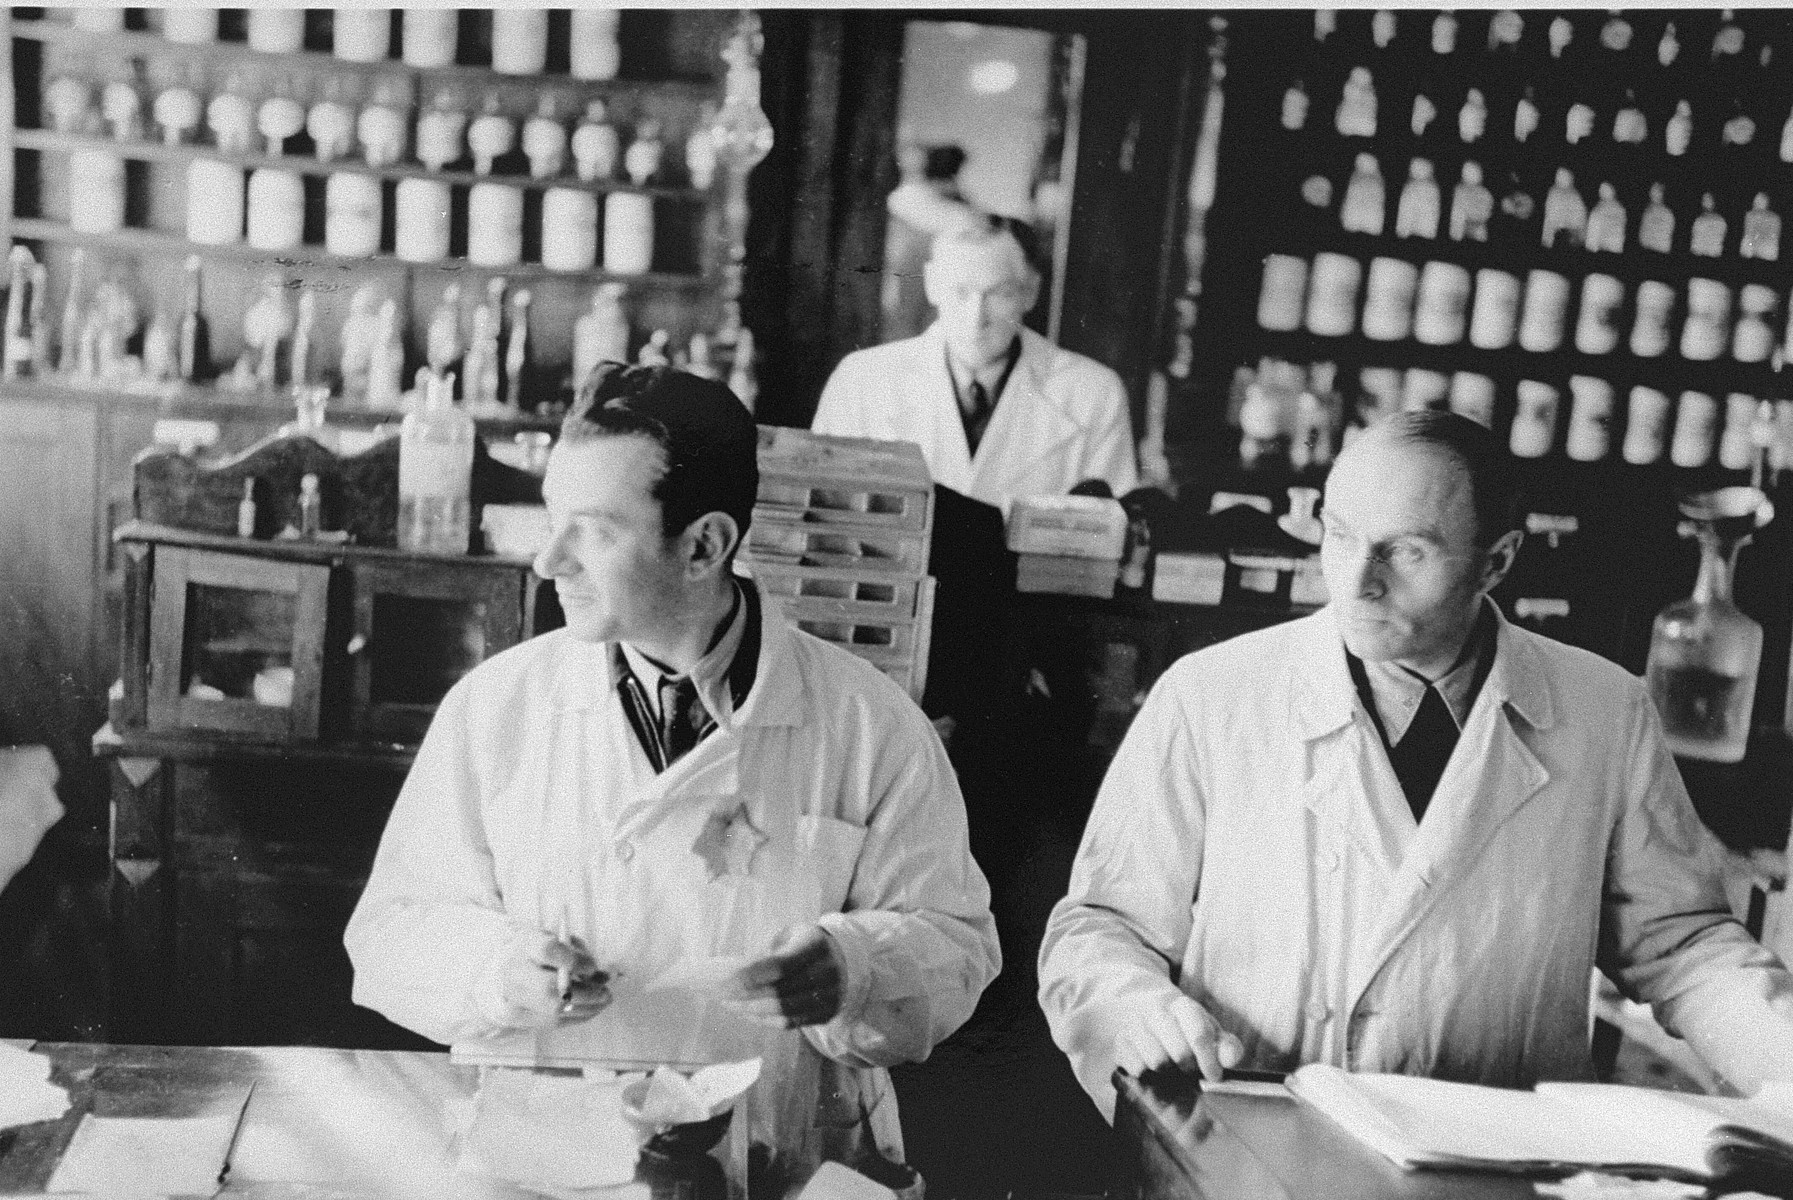 Jewish pharmacists at work in the only pharmacy in the Kovno ghetto.   Among those pictured are head pharmacist Aizik Srebnitzki (left), and N. Segalsohn (from Memel).  Aizik Srebnitzki, who was active in the ghetto's Zionist underground, kept a clandestine radio in the basement of the pharmacy for use by the underground.